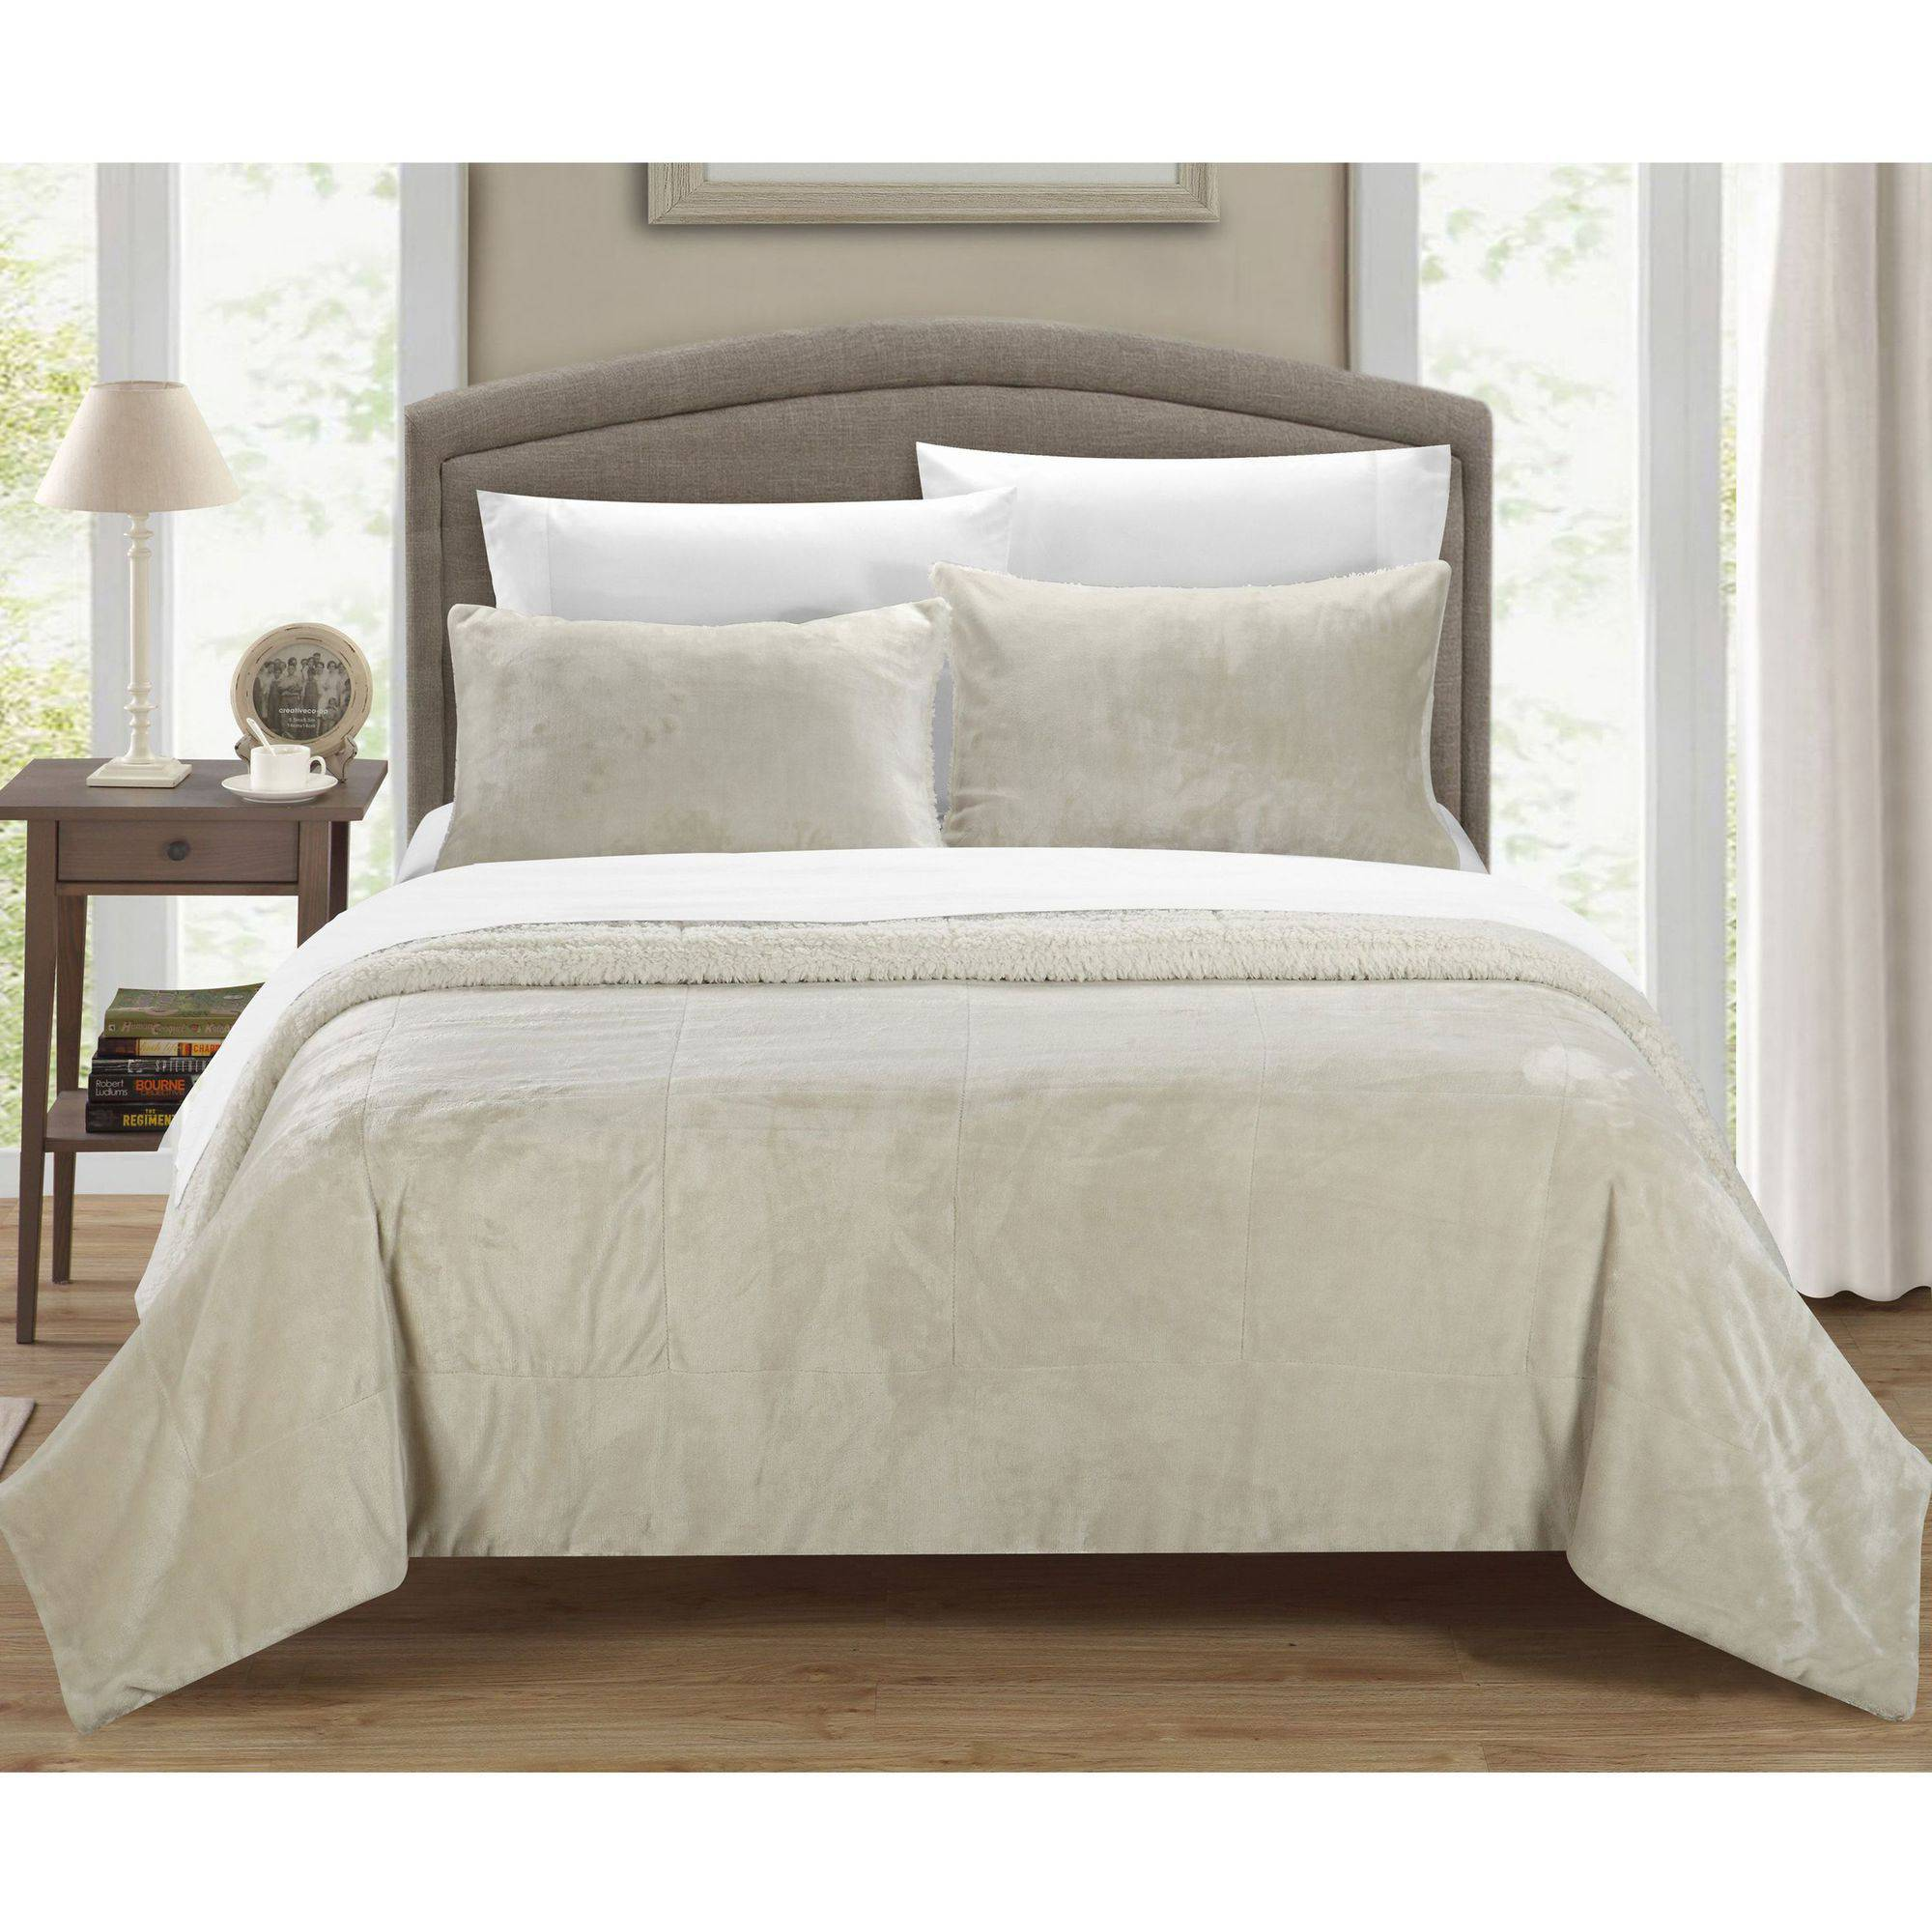 Chic Home Evie 3-Piece Plush Microsuede Sherpa Blanket